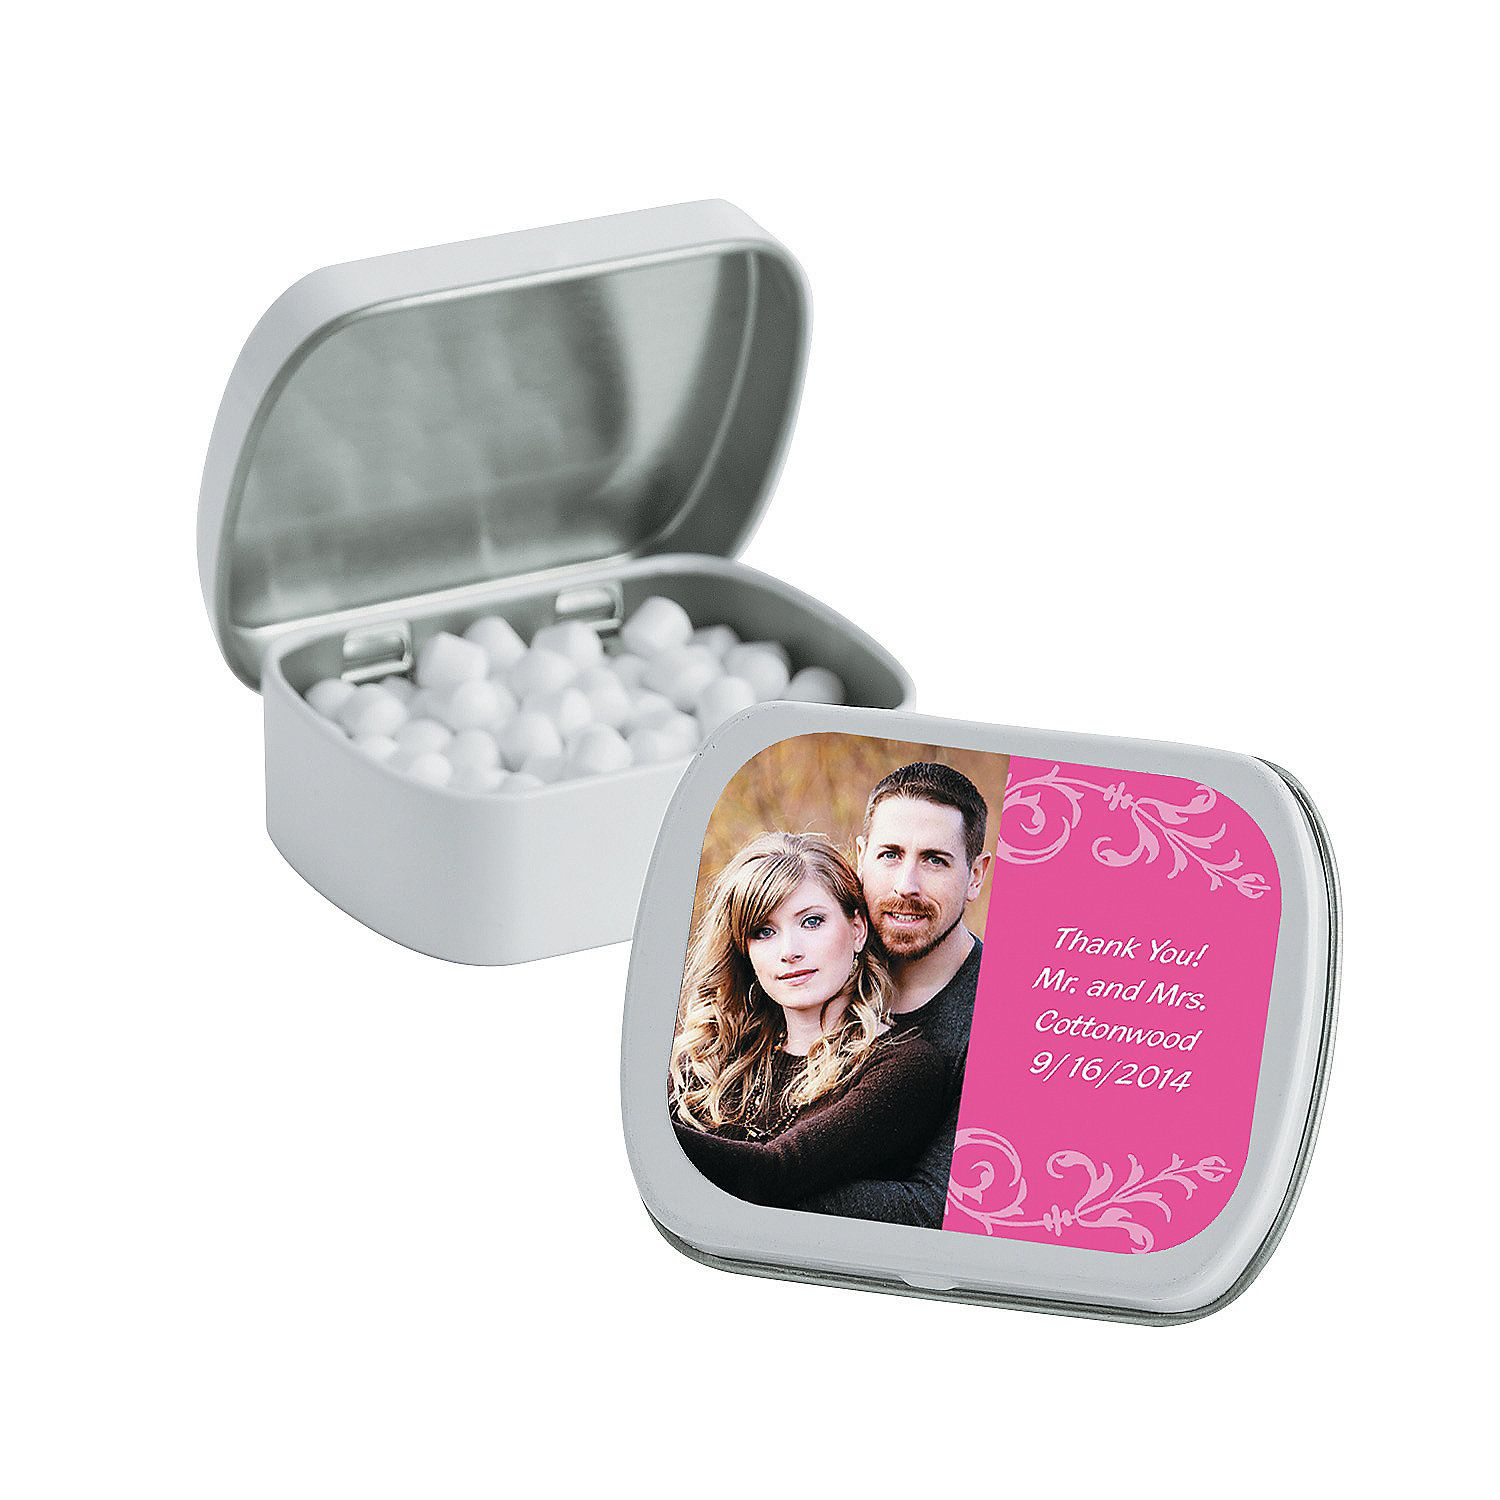 Hot Pink Custom Photo Mint Tins - Wedding favors from ...